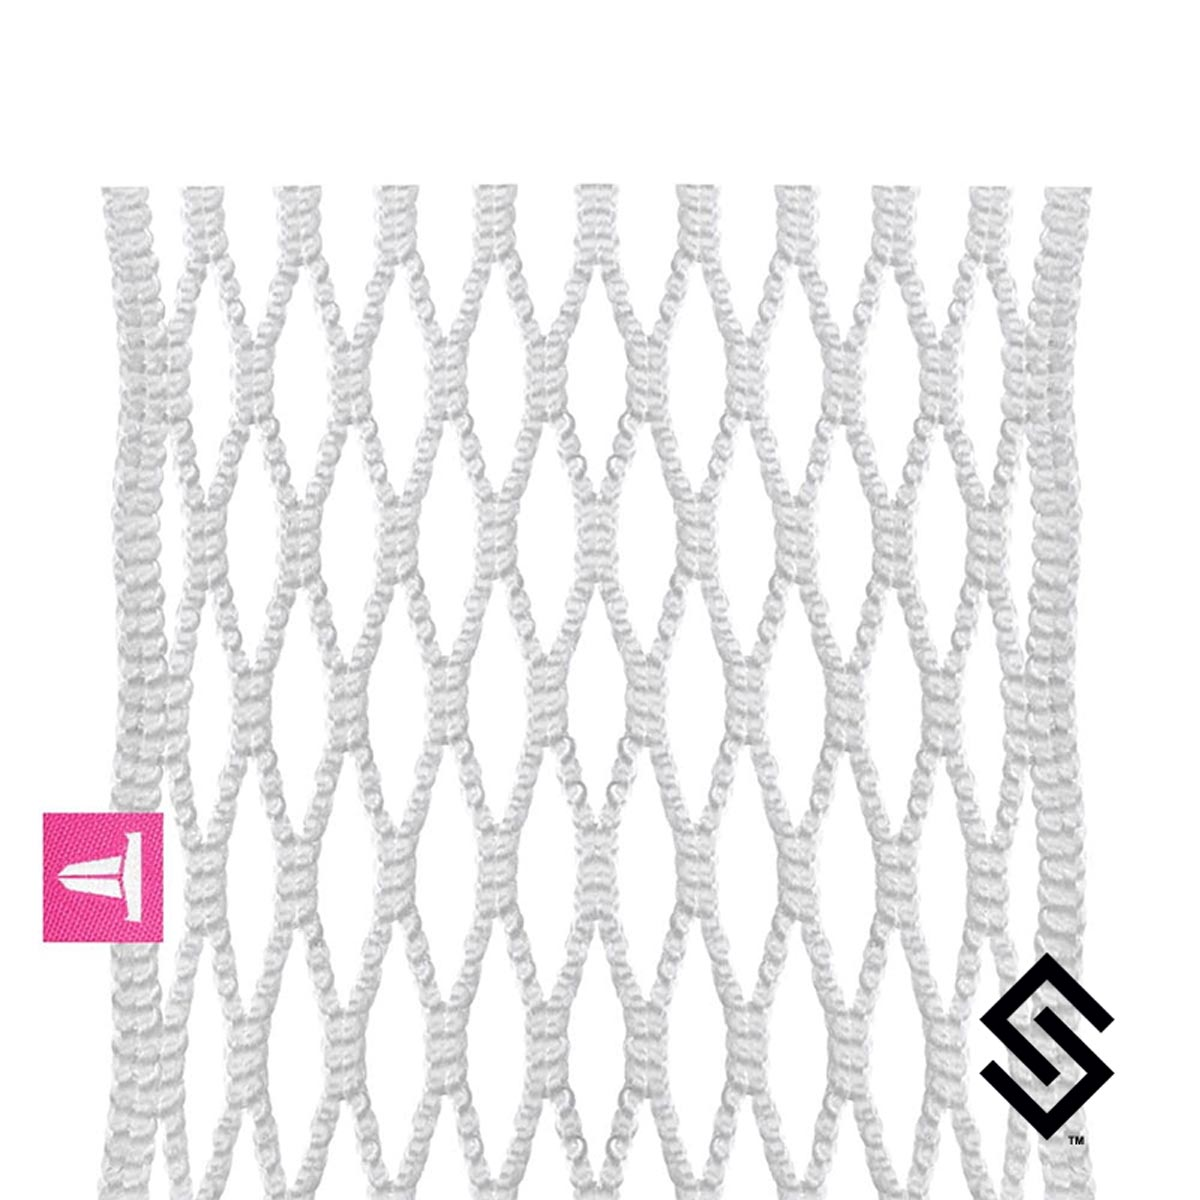 Throne LIMITED EDITION Fiber 2 BCA Mesh Pink